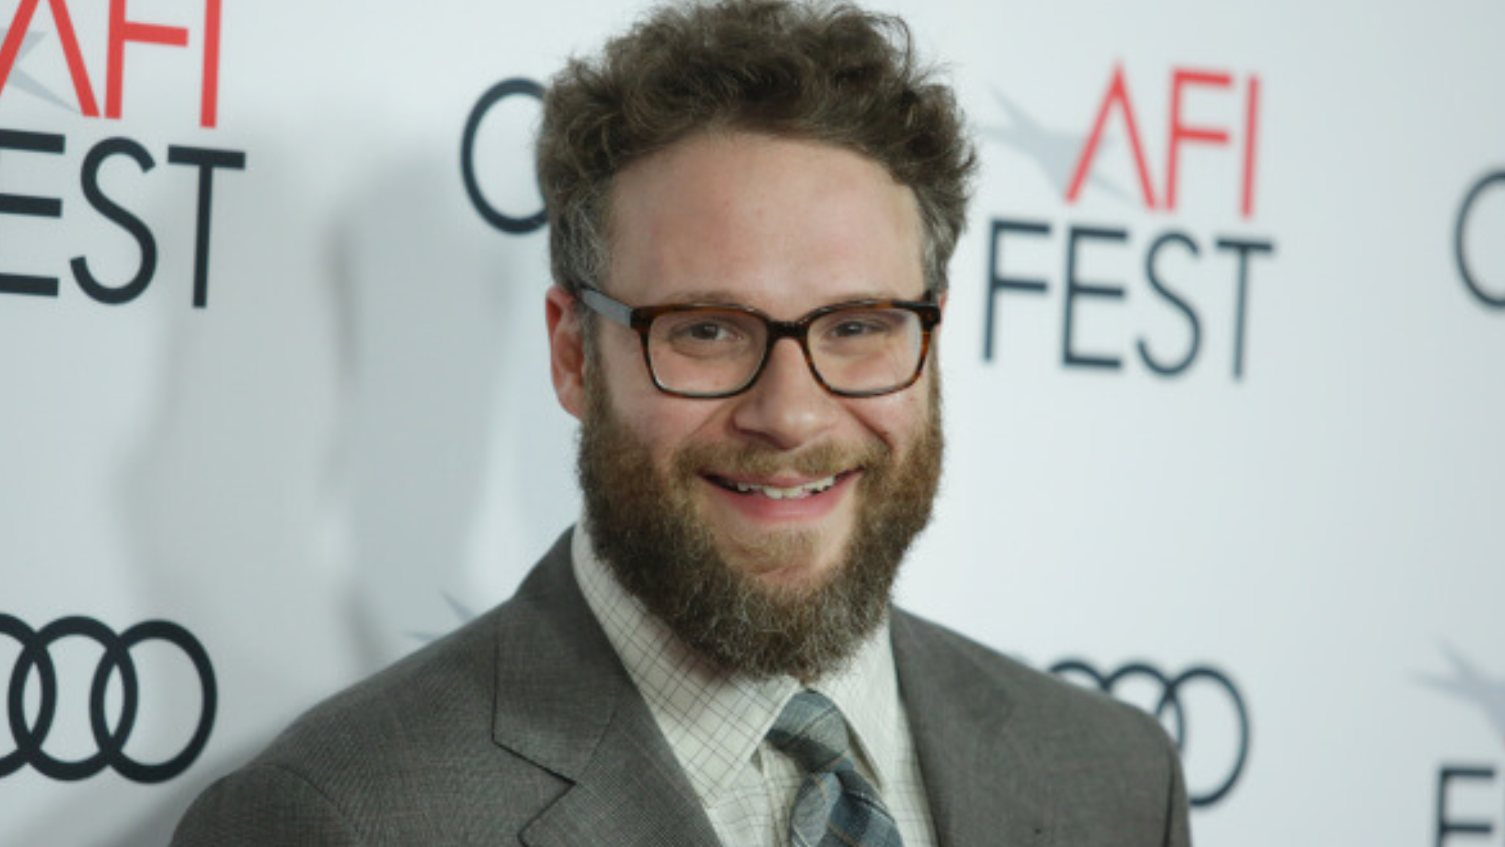 Israel is ridiculous, antiquated and based on lies about other people's land, Seth Rogen says, but he's afraid to tell other Jews